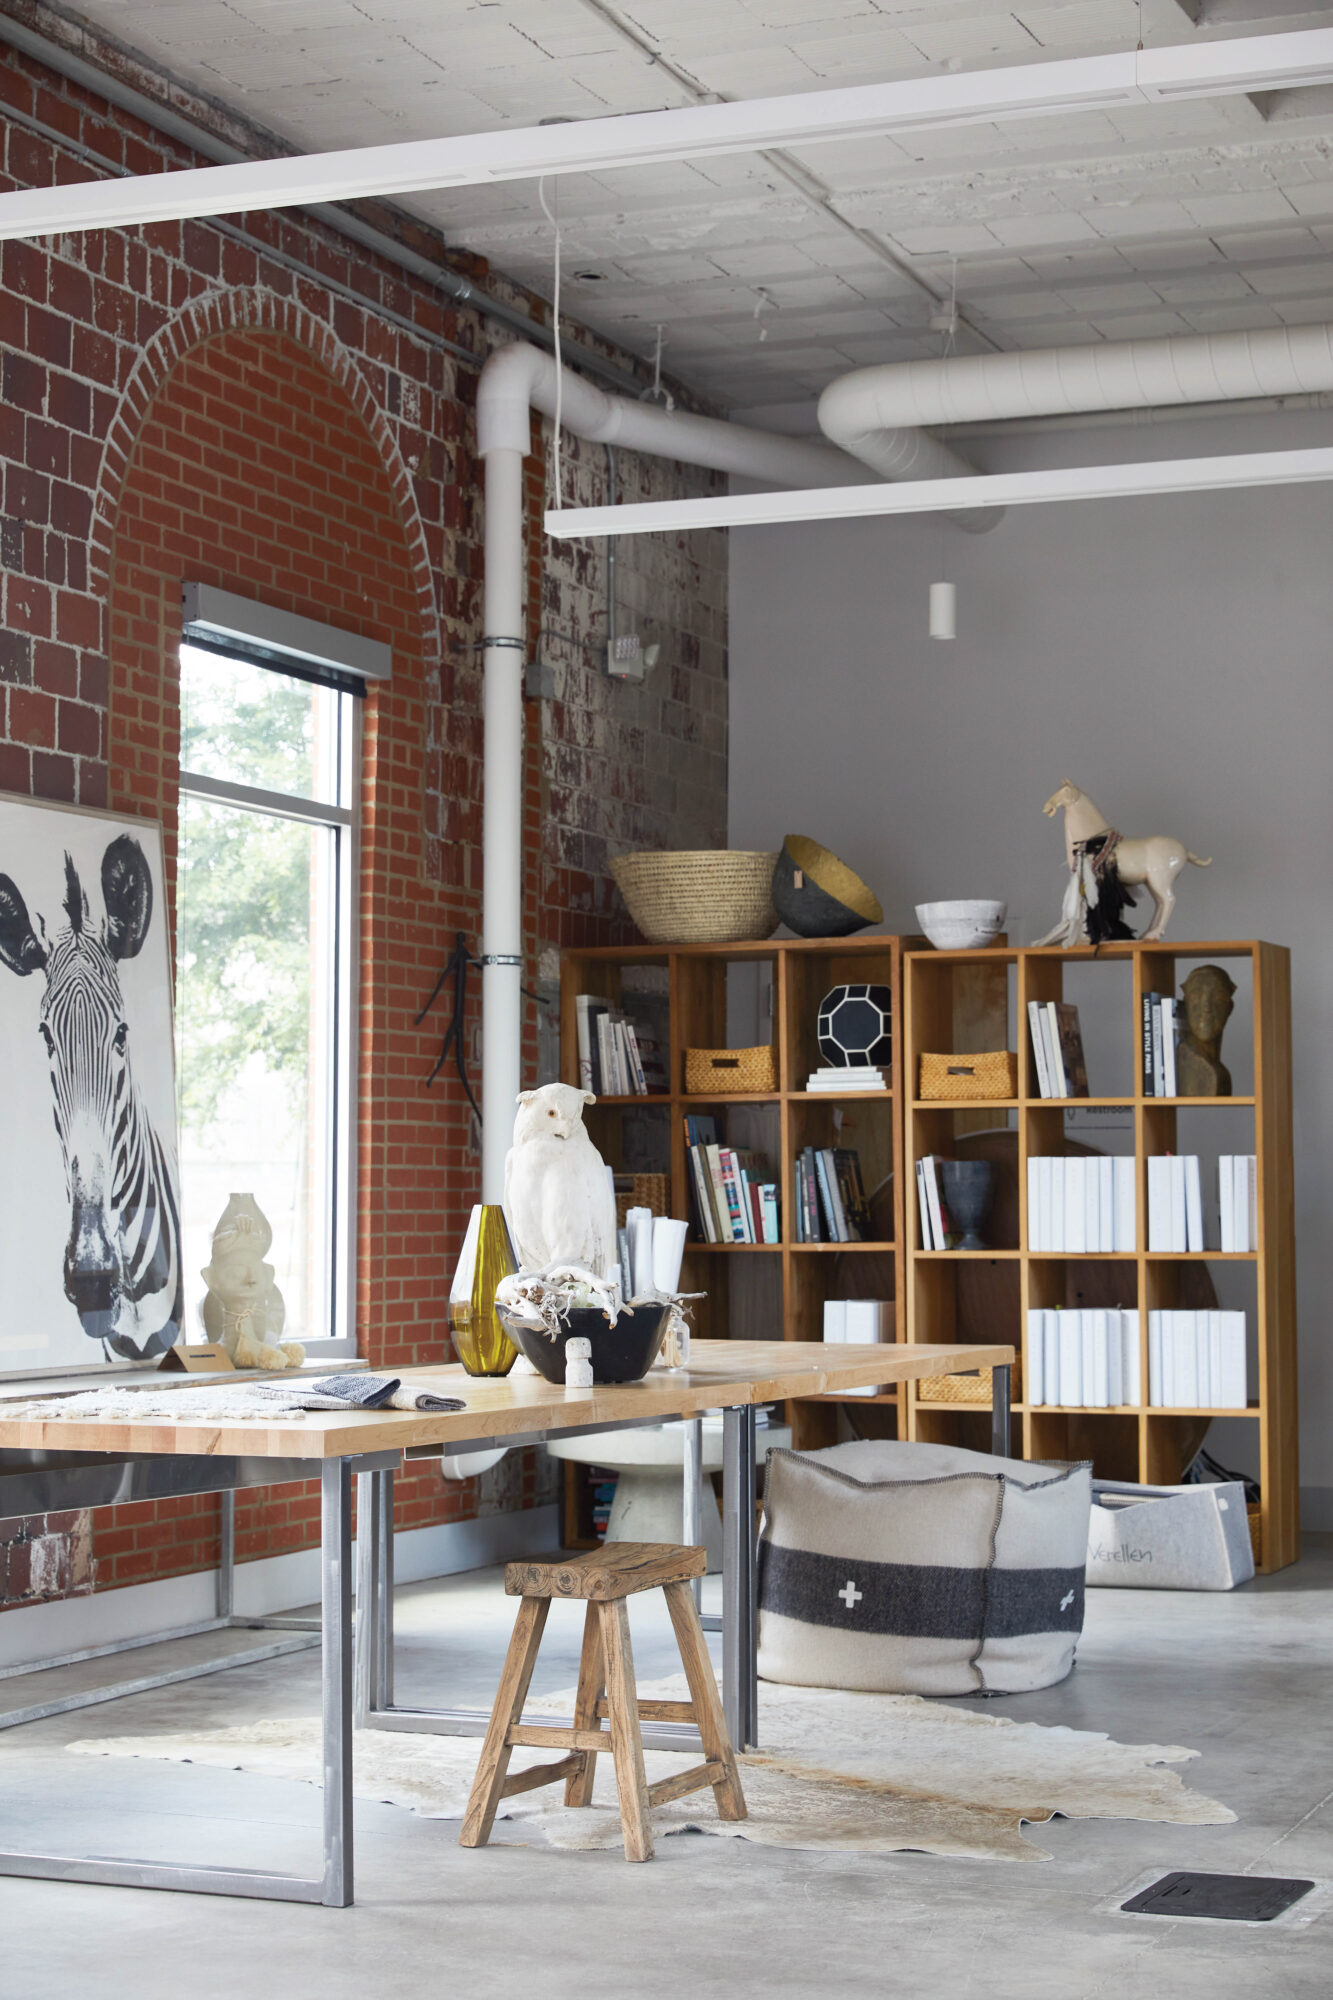 Loft-style office with exposed brick, open shelves and zebra artwork